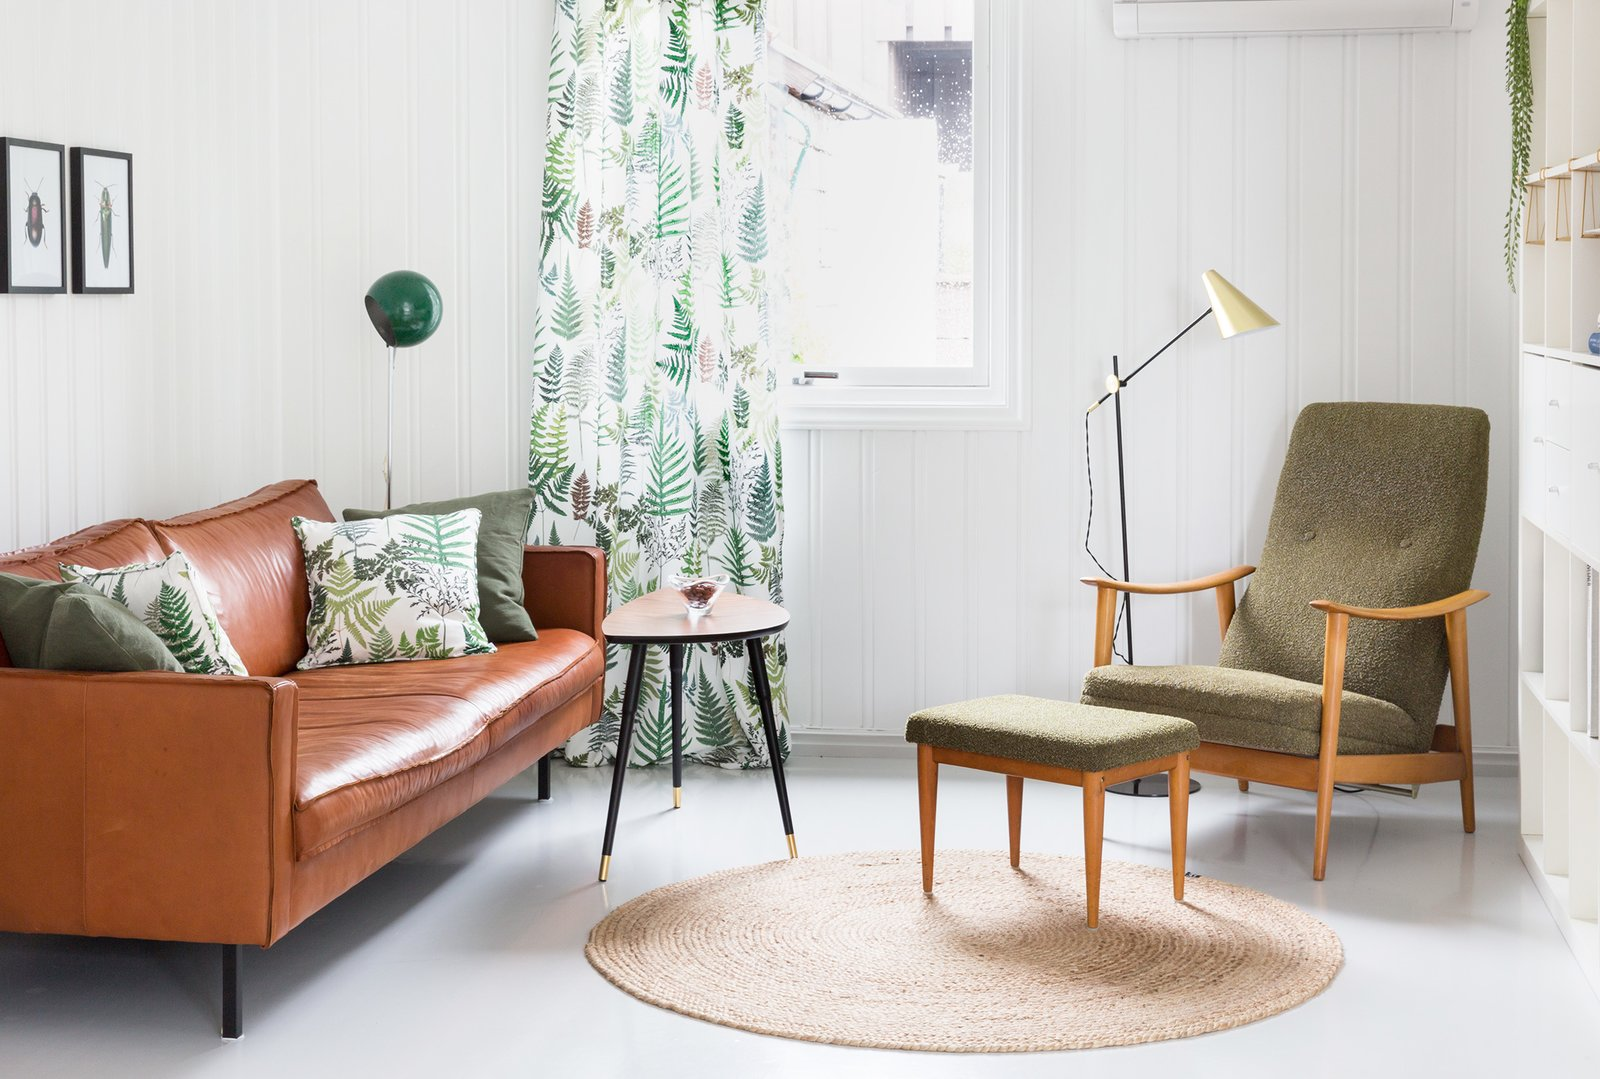 Midcentury furniture, and thoughtful accents make this holiday rental a truly delightful way to enjoy Norway's Vestfold County.